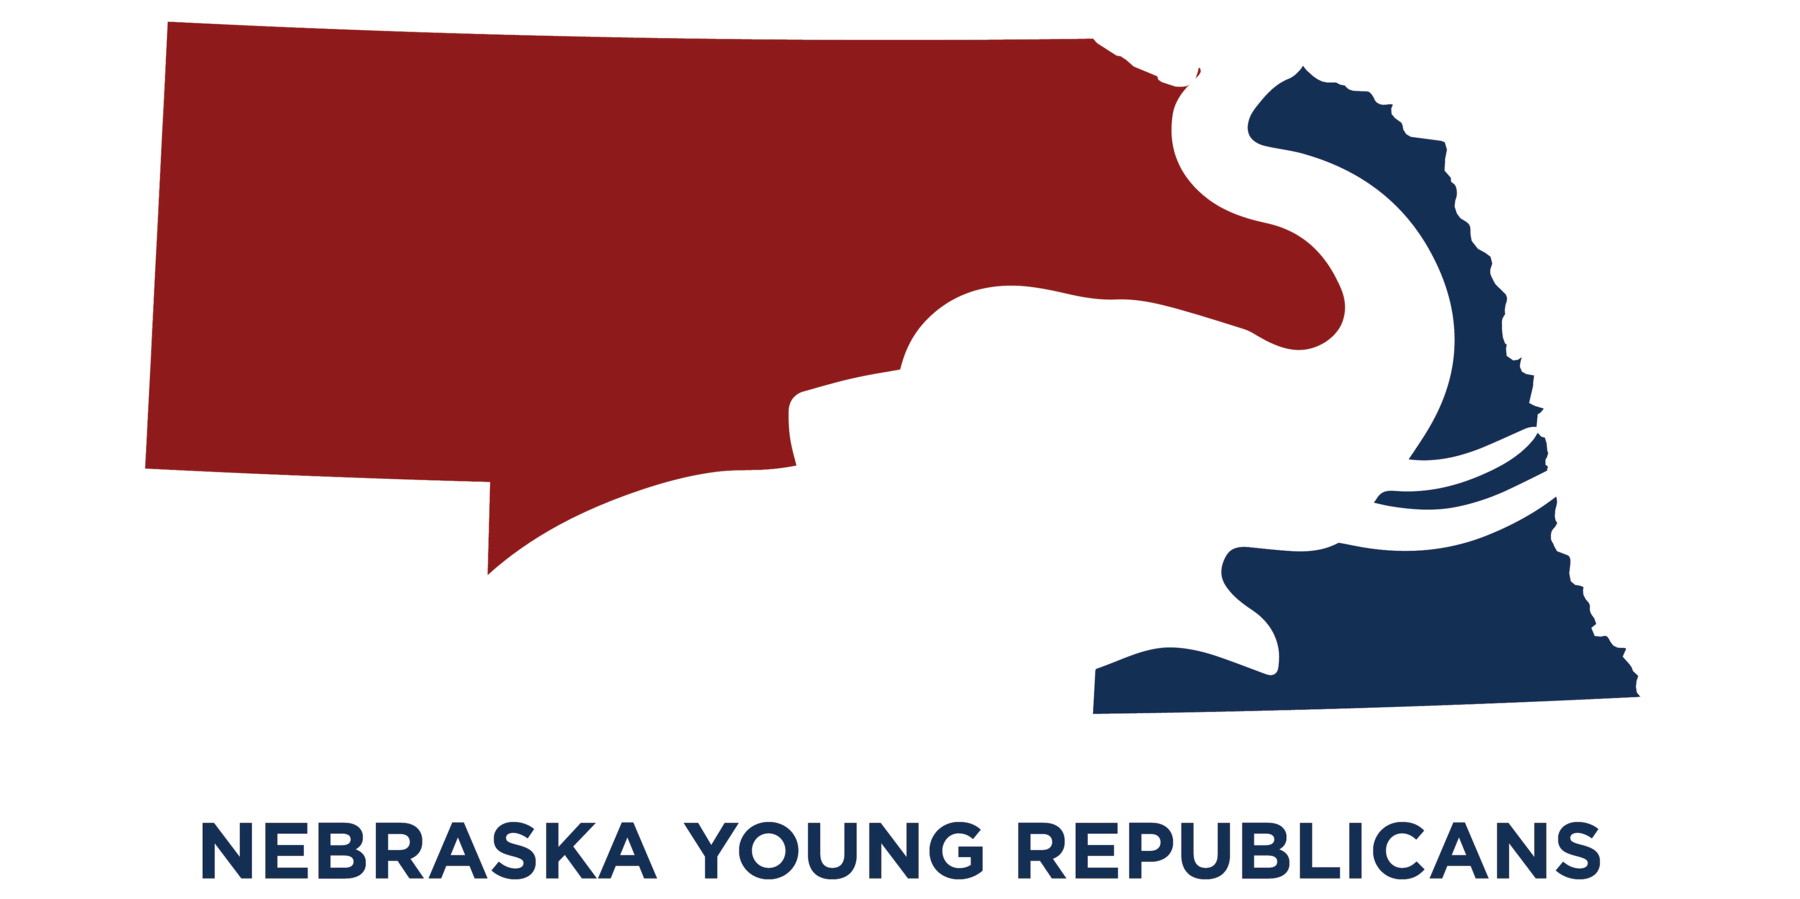 Nebraska Young Republicans: Support the Young Republicans